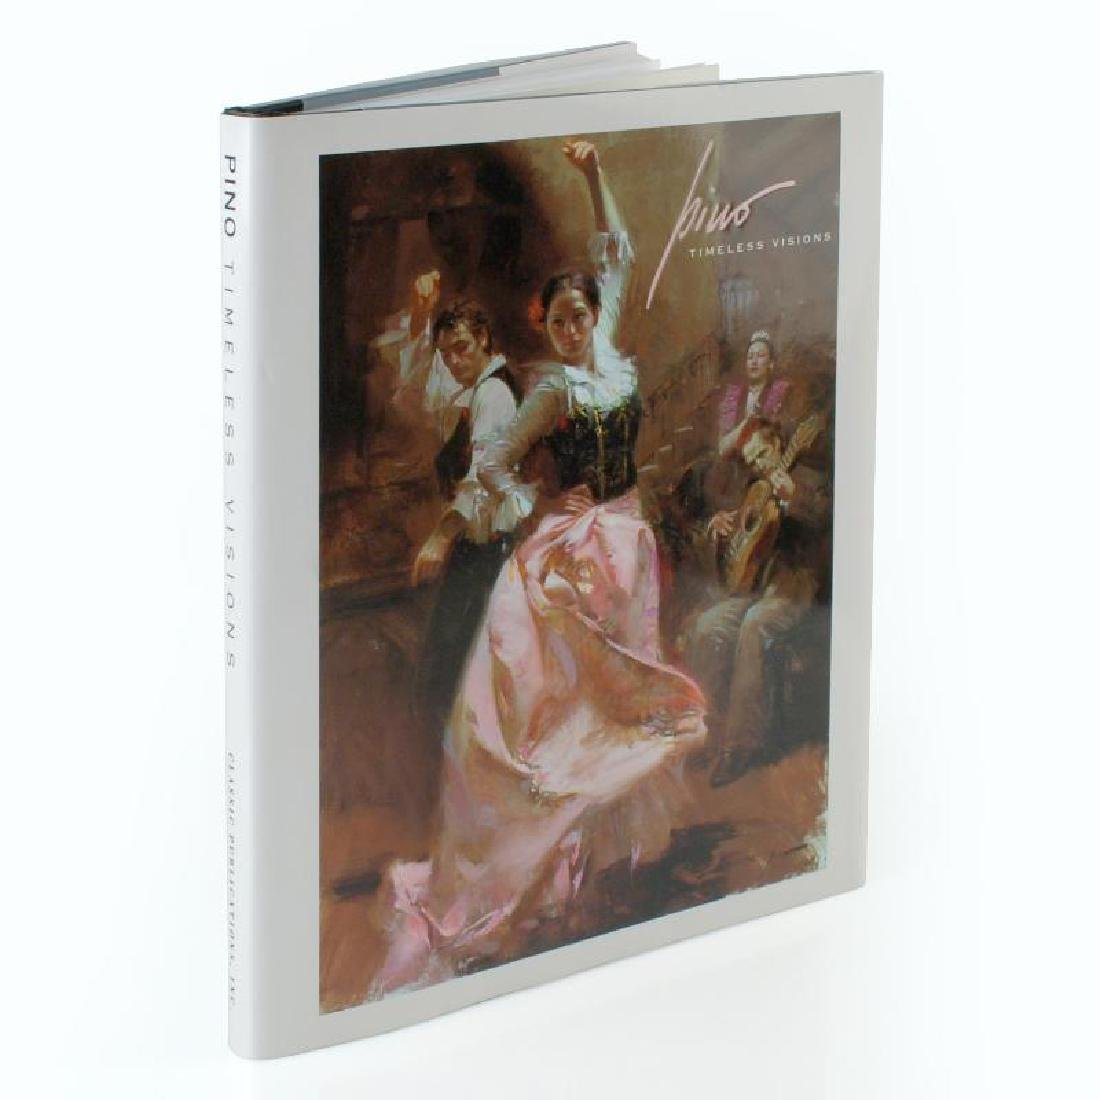 """Pino: Timeless Visions""(2007) Fine Art Book with Text"